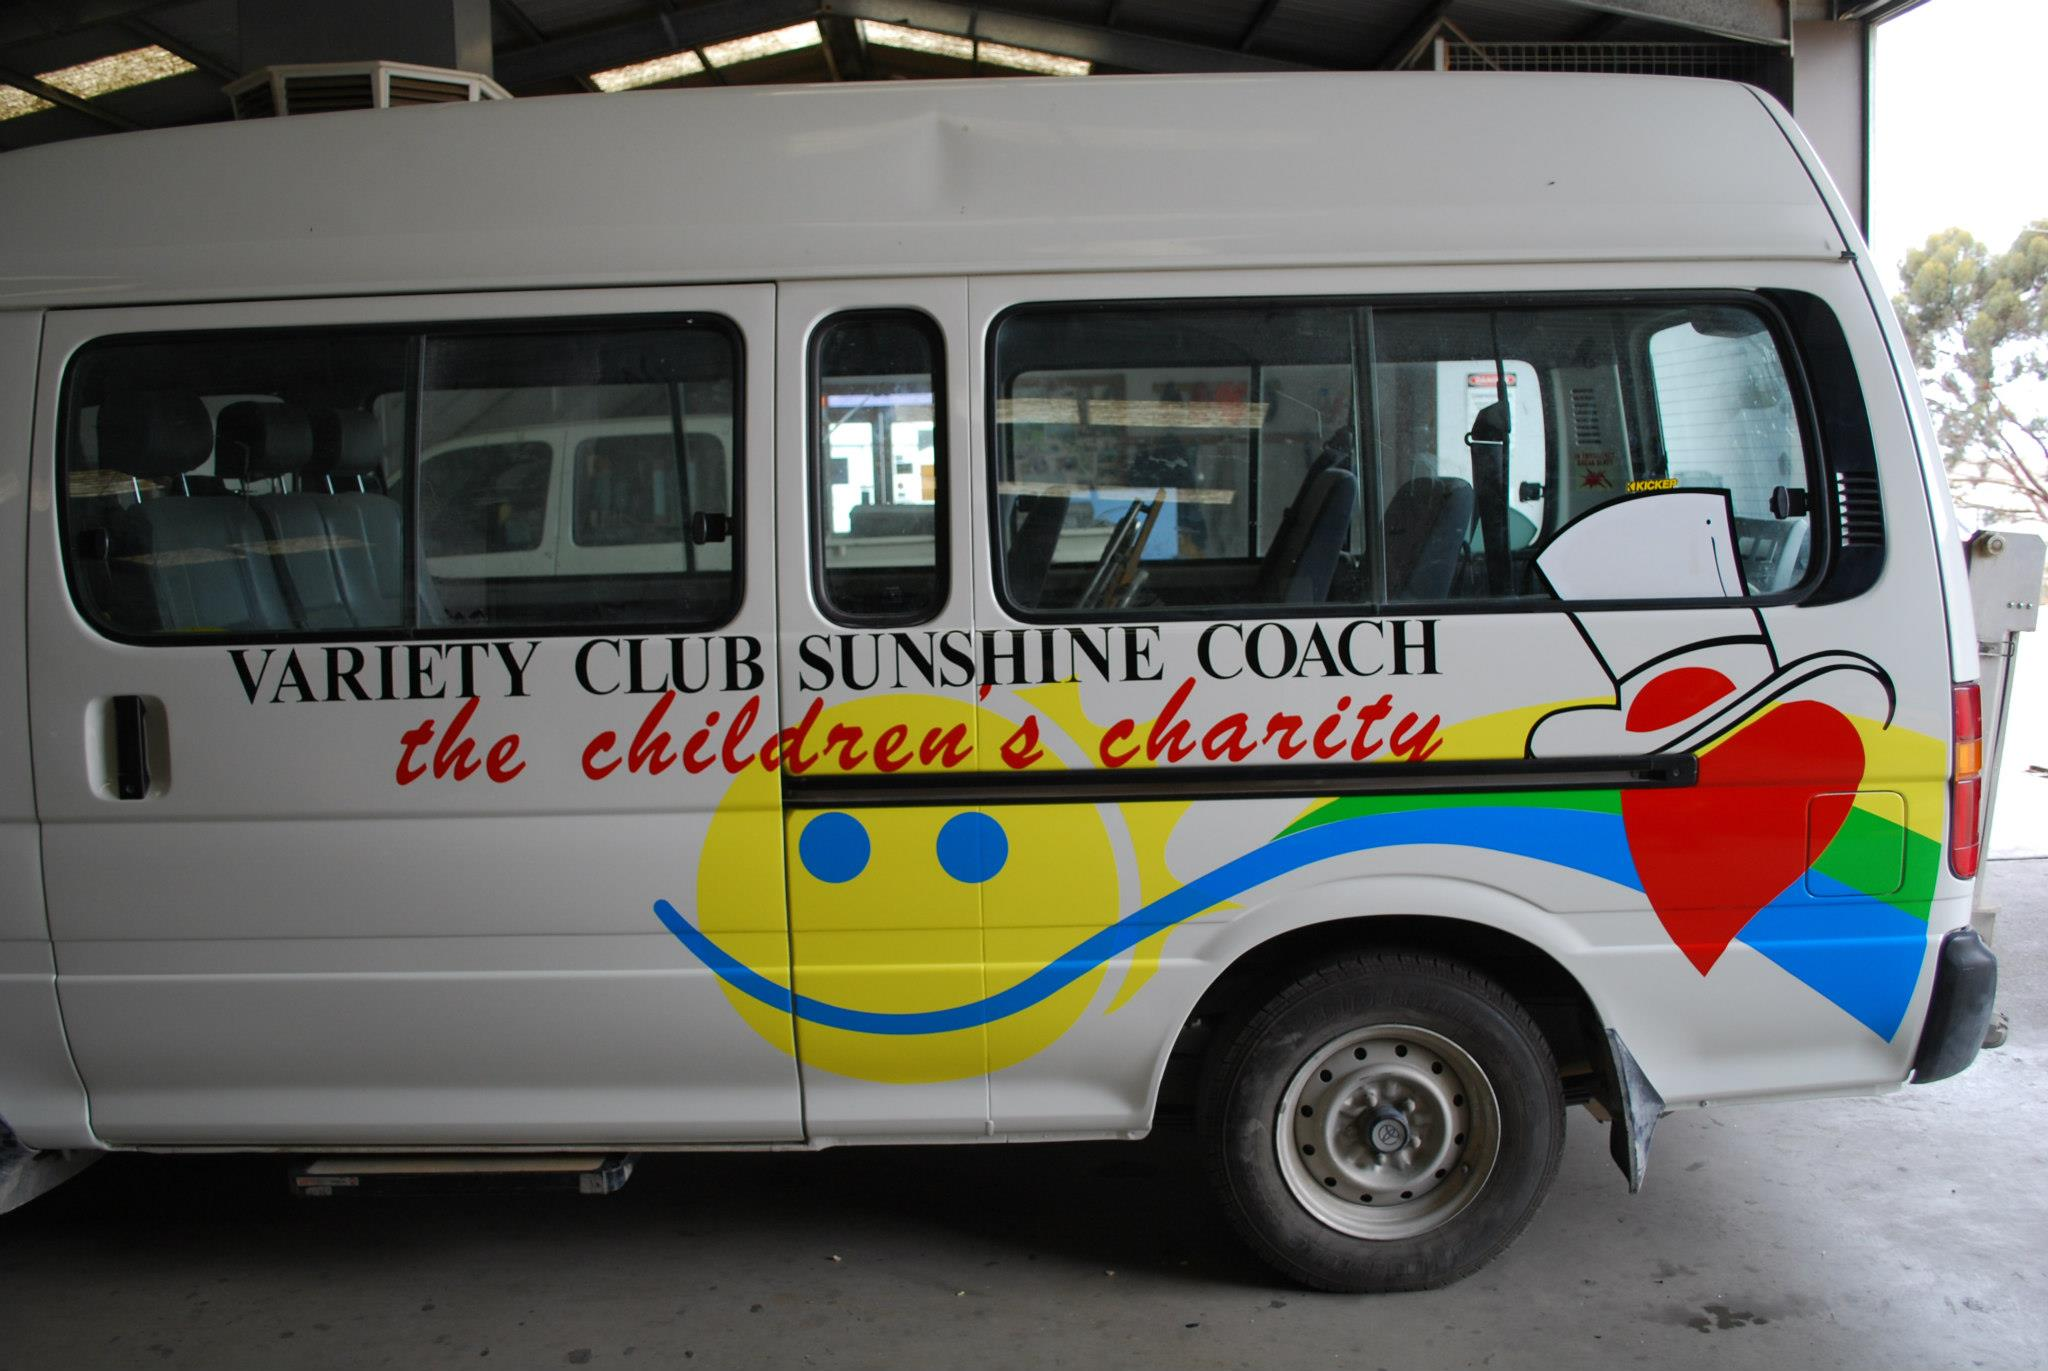 Variety Club Sunshine Coach